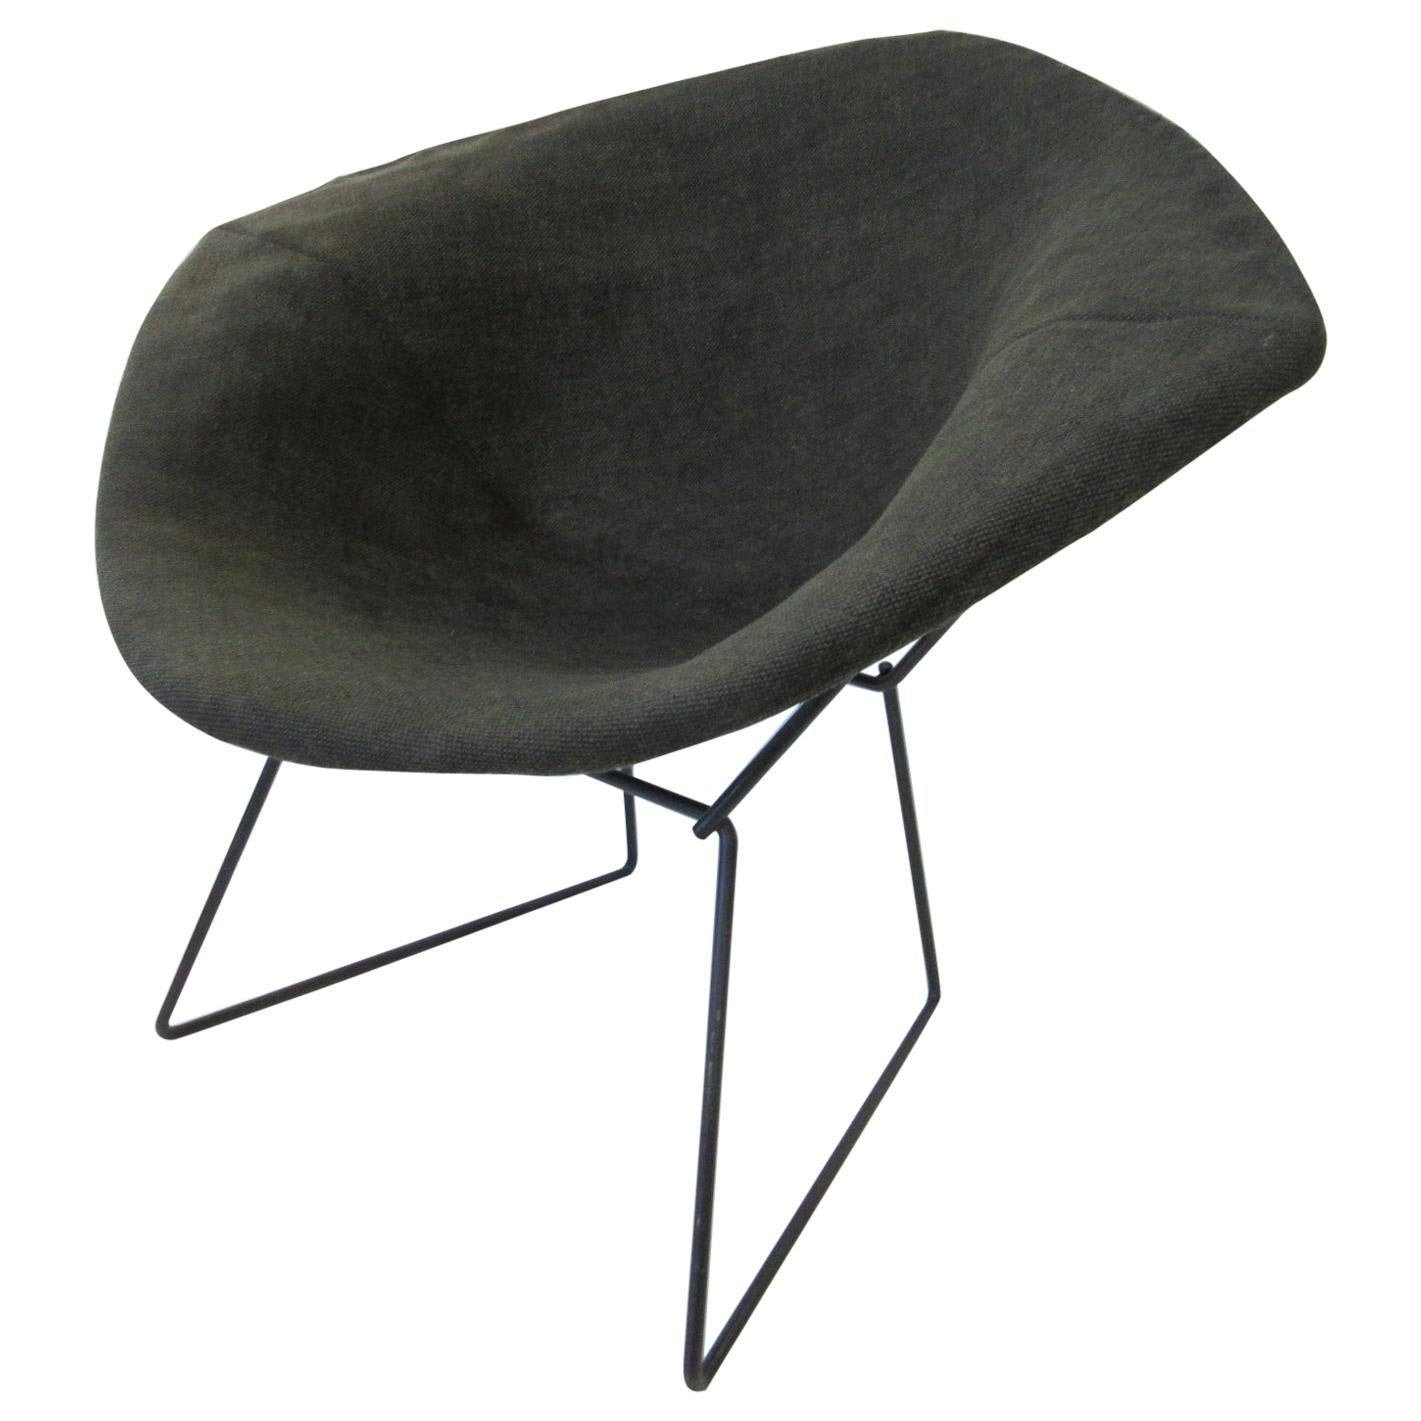 Early and Rare 'Pre-Production' Harry Bertoia Small Diamond Chair for Knoll